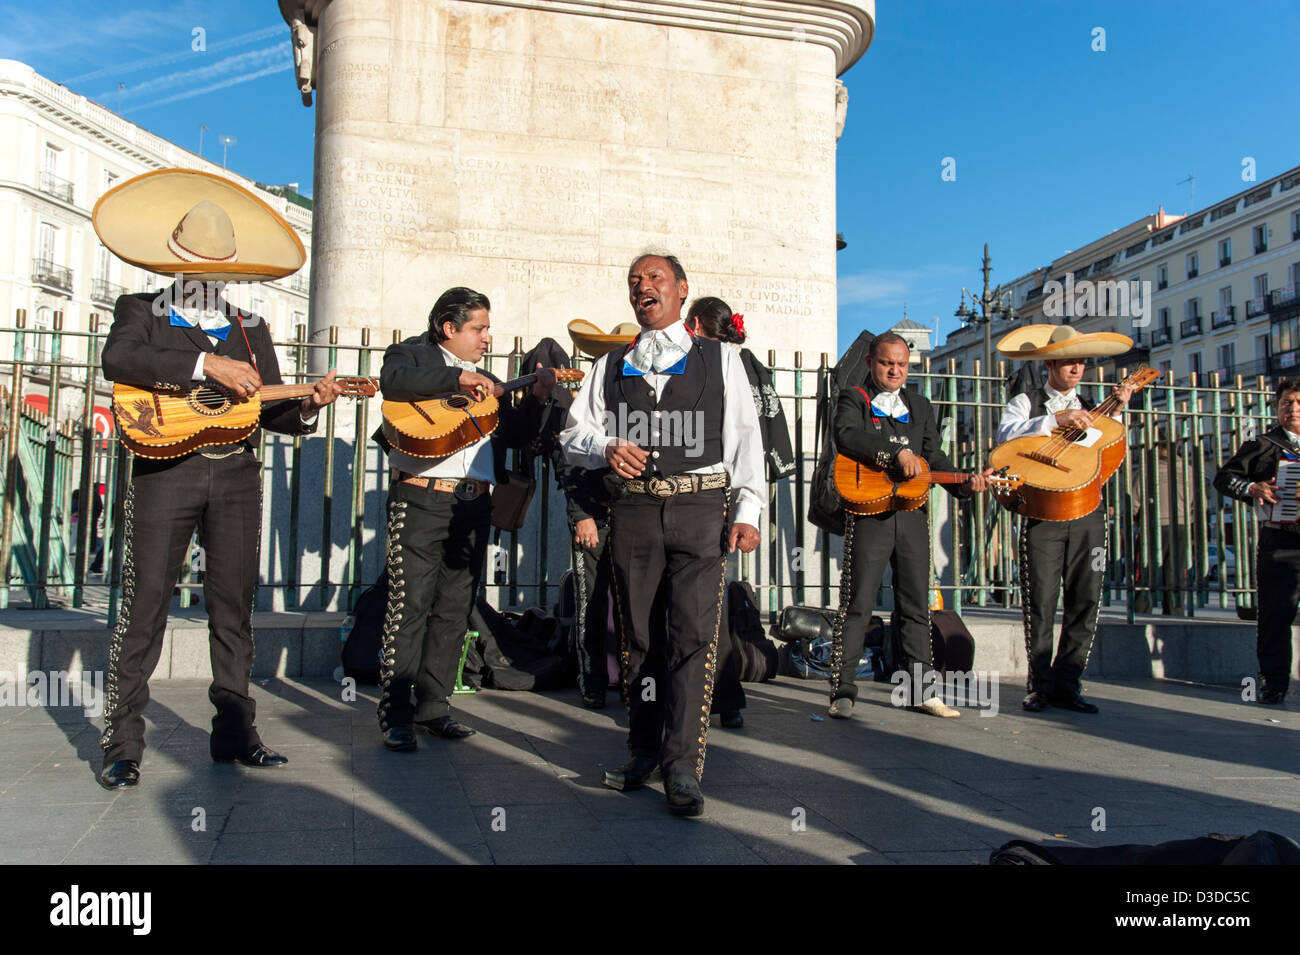 Group of Mexican mariachis playing in the Puerta del Sol, Madrid, Spain - Stock Image